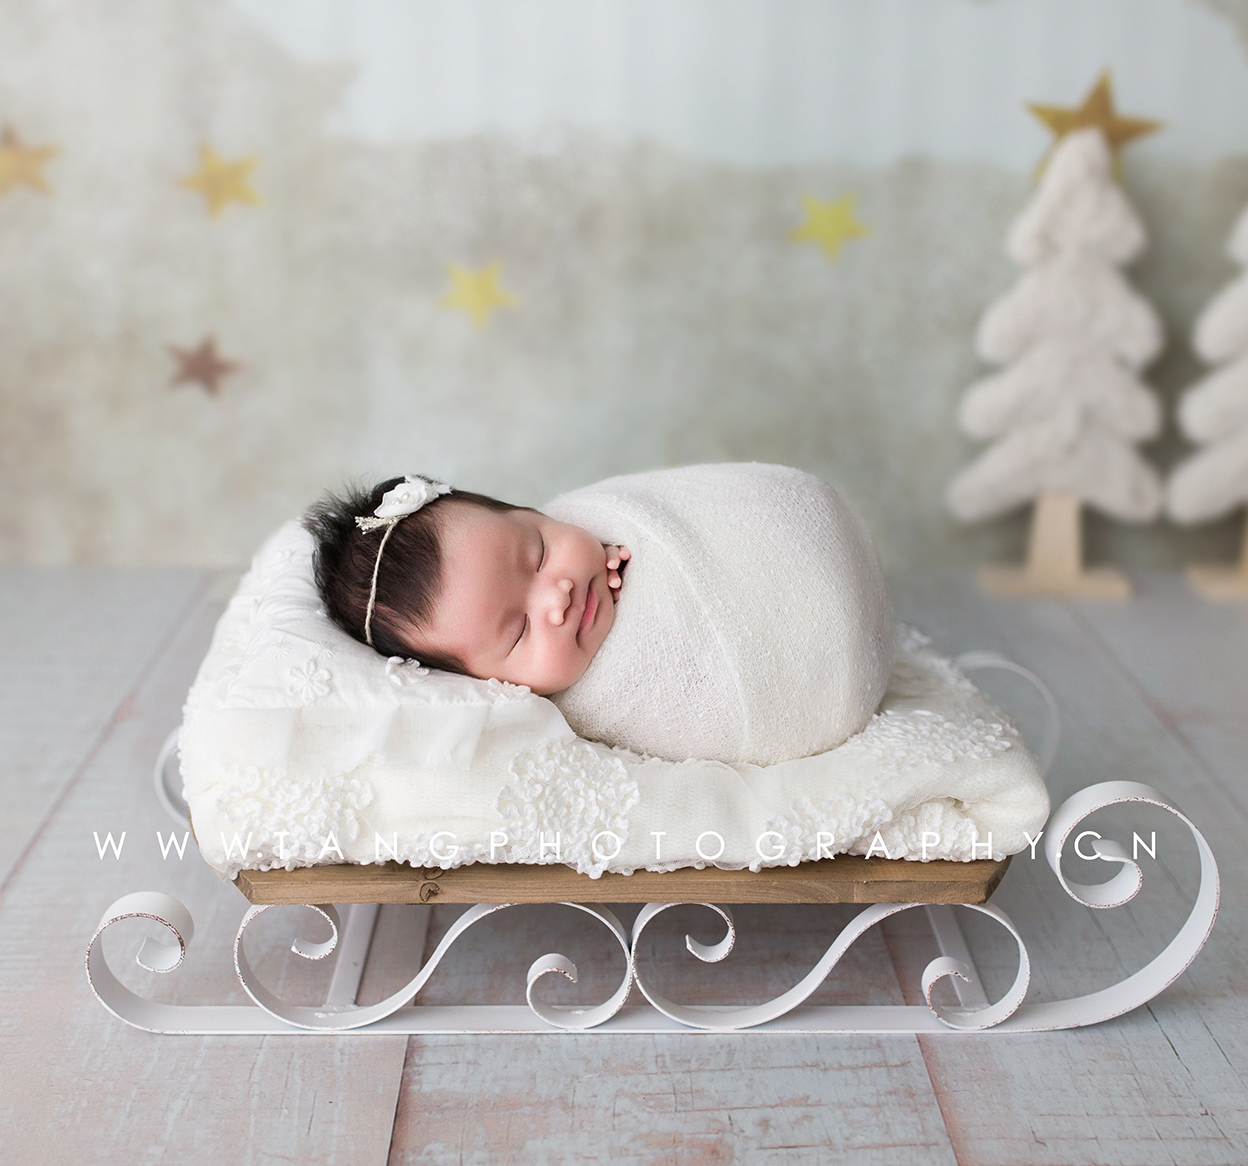 Newborn photography props baby photo creative props newborn carriage small bed props studio photoNewborn photography props baby photo creative props newborn carriage small bed props studio photo